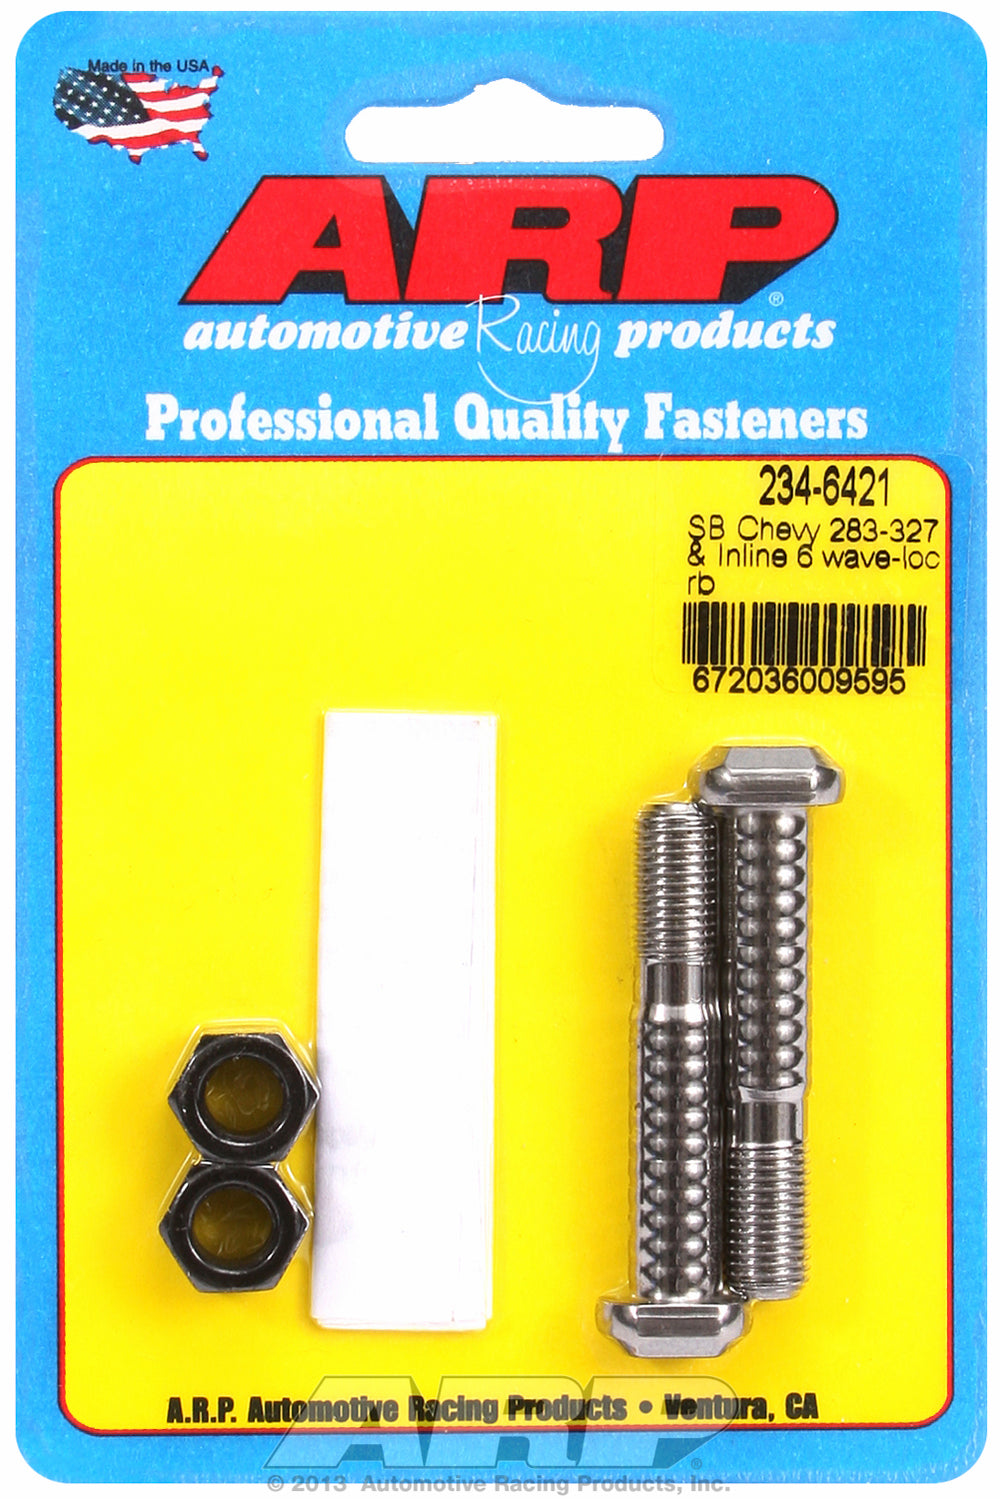 Pro Wave ARP2000 2-pc Rod Bolt Kit for Chevrolet 265-283-327 cid (small journal) 11/32˝